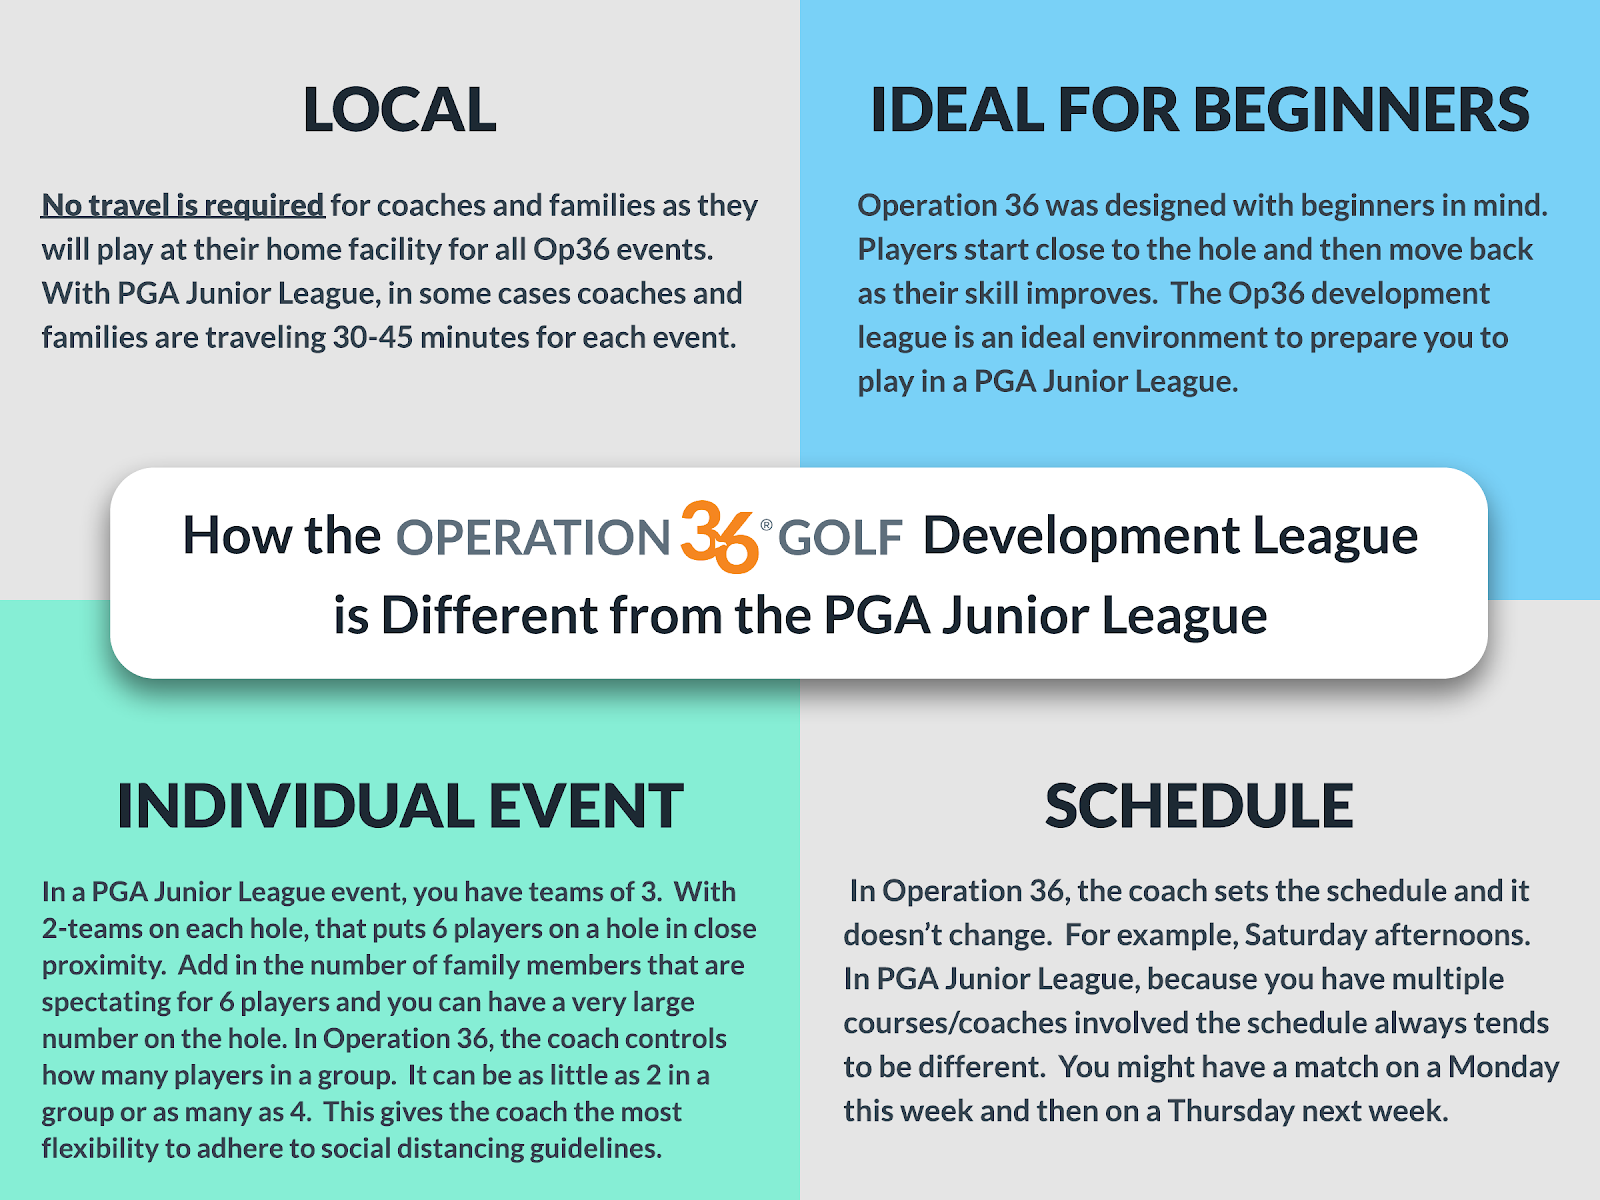 How the Operation 36 Development League is different from PGA Junior League